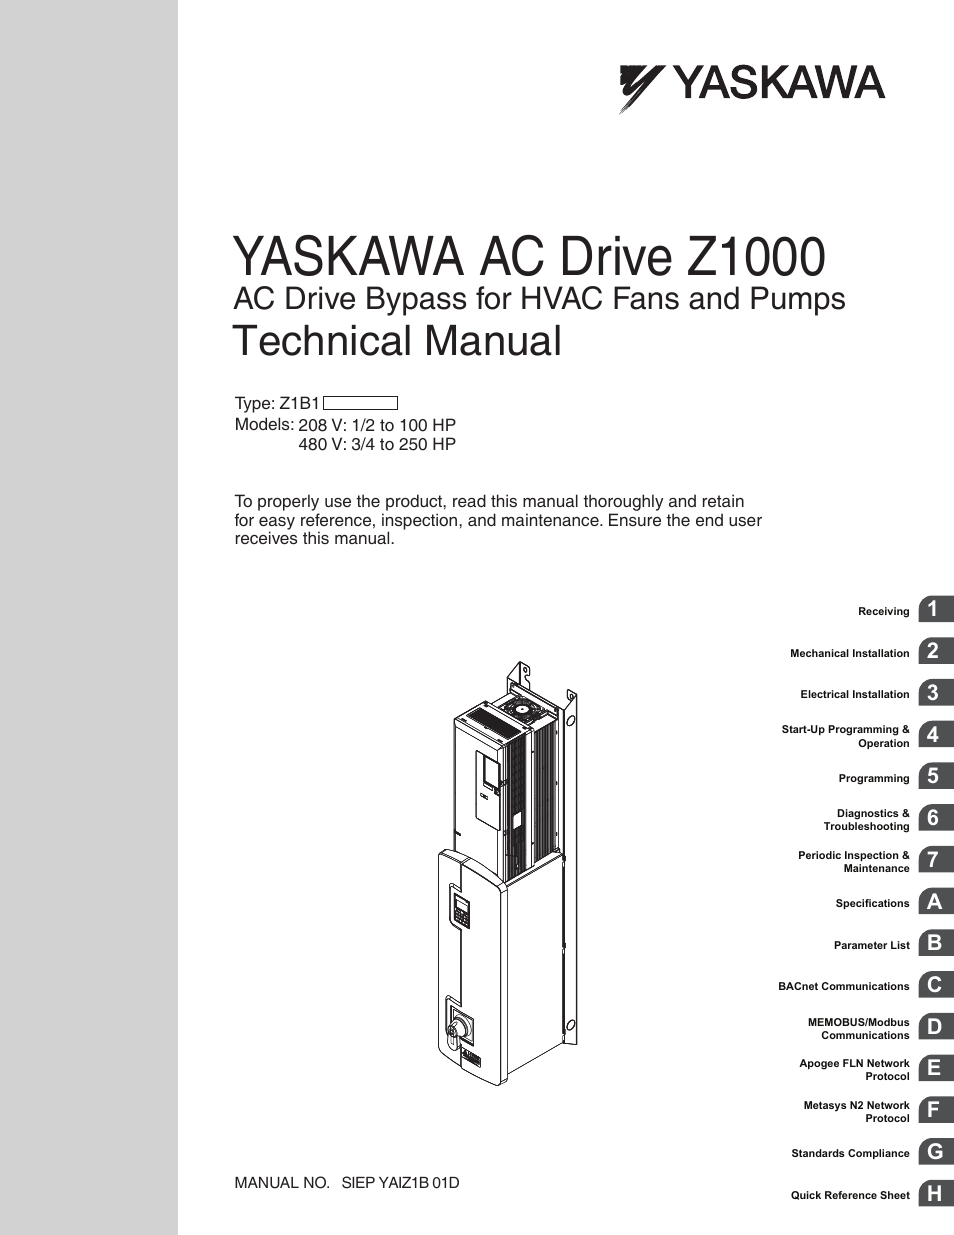 Yaskawa Ac Drive Z1000 Bypass Technical Manual User Manual